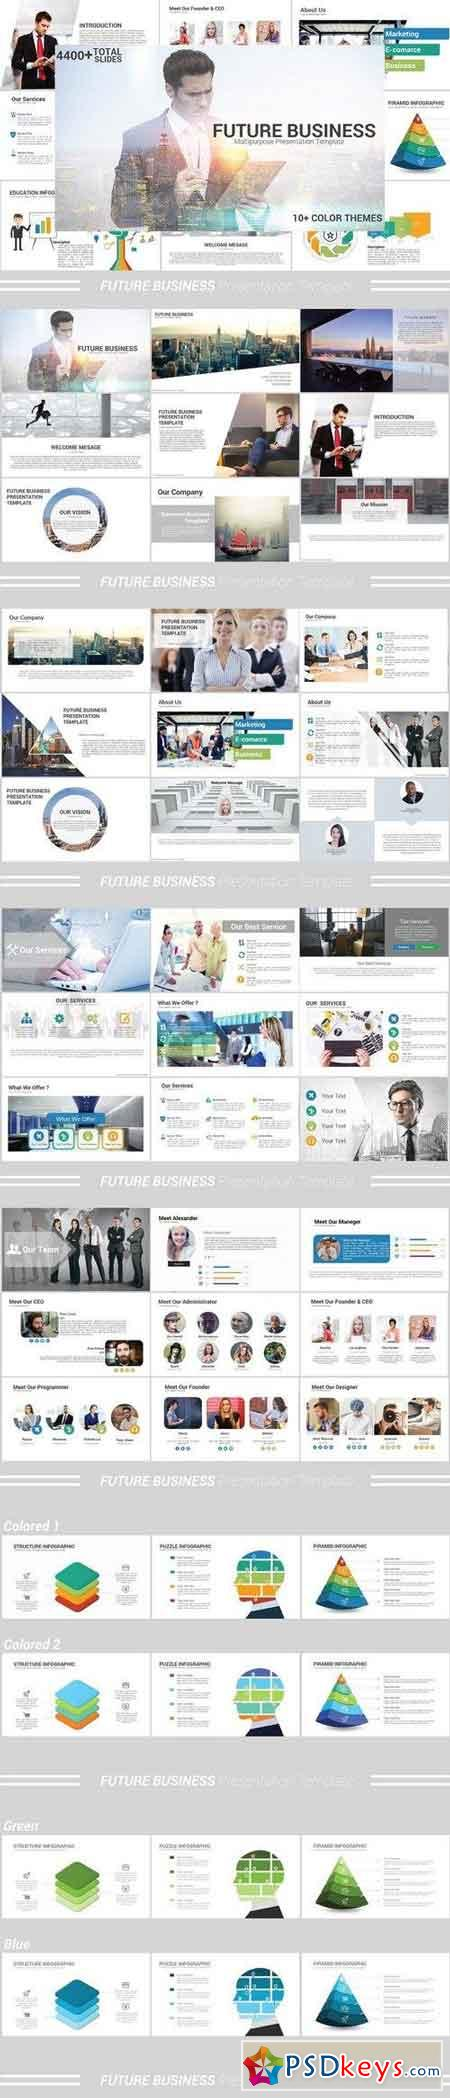 Future Business Powerpoint Template 1484500